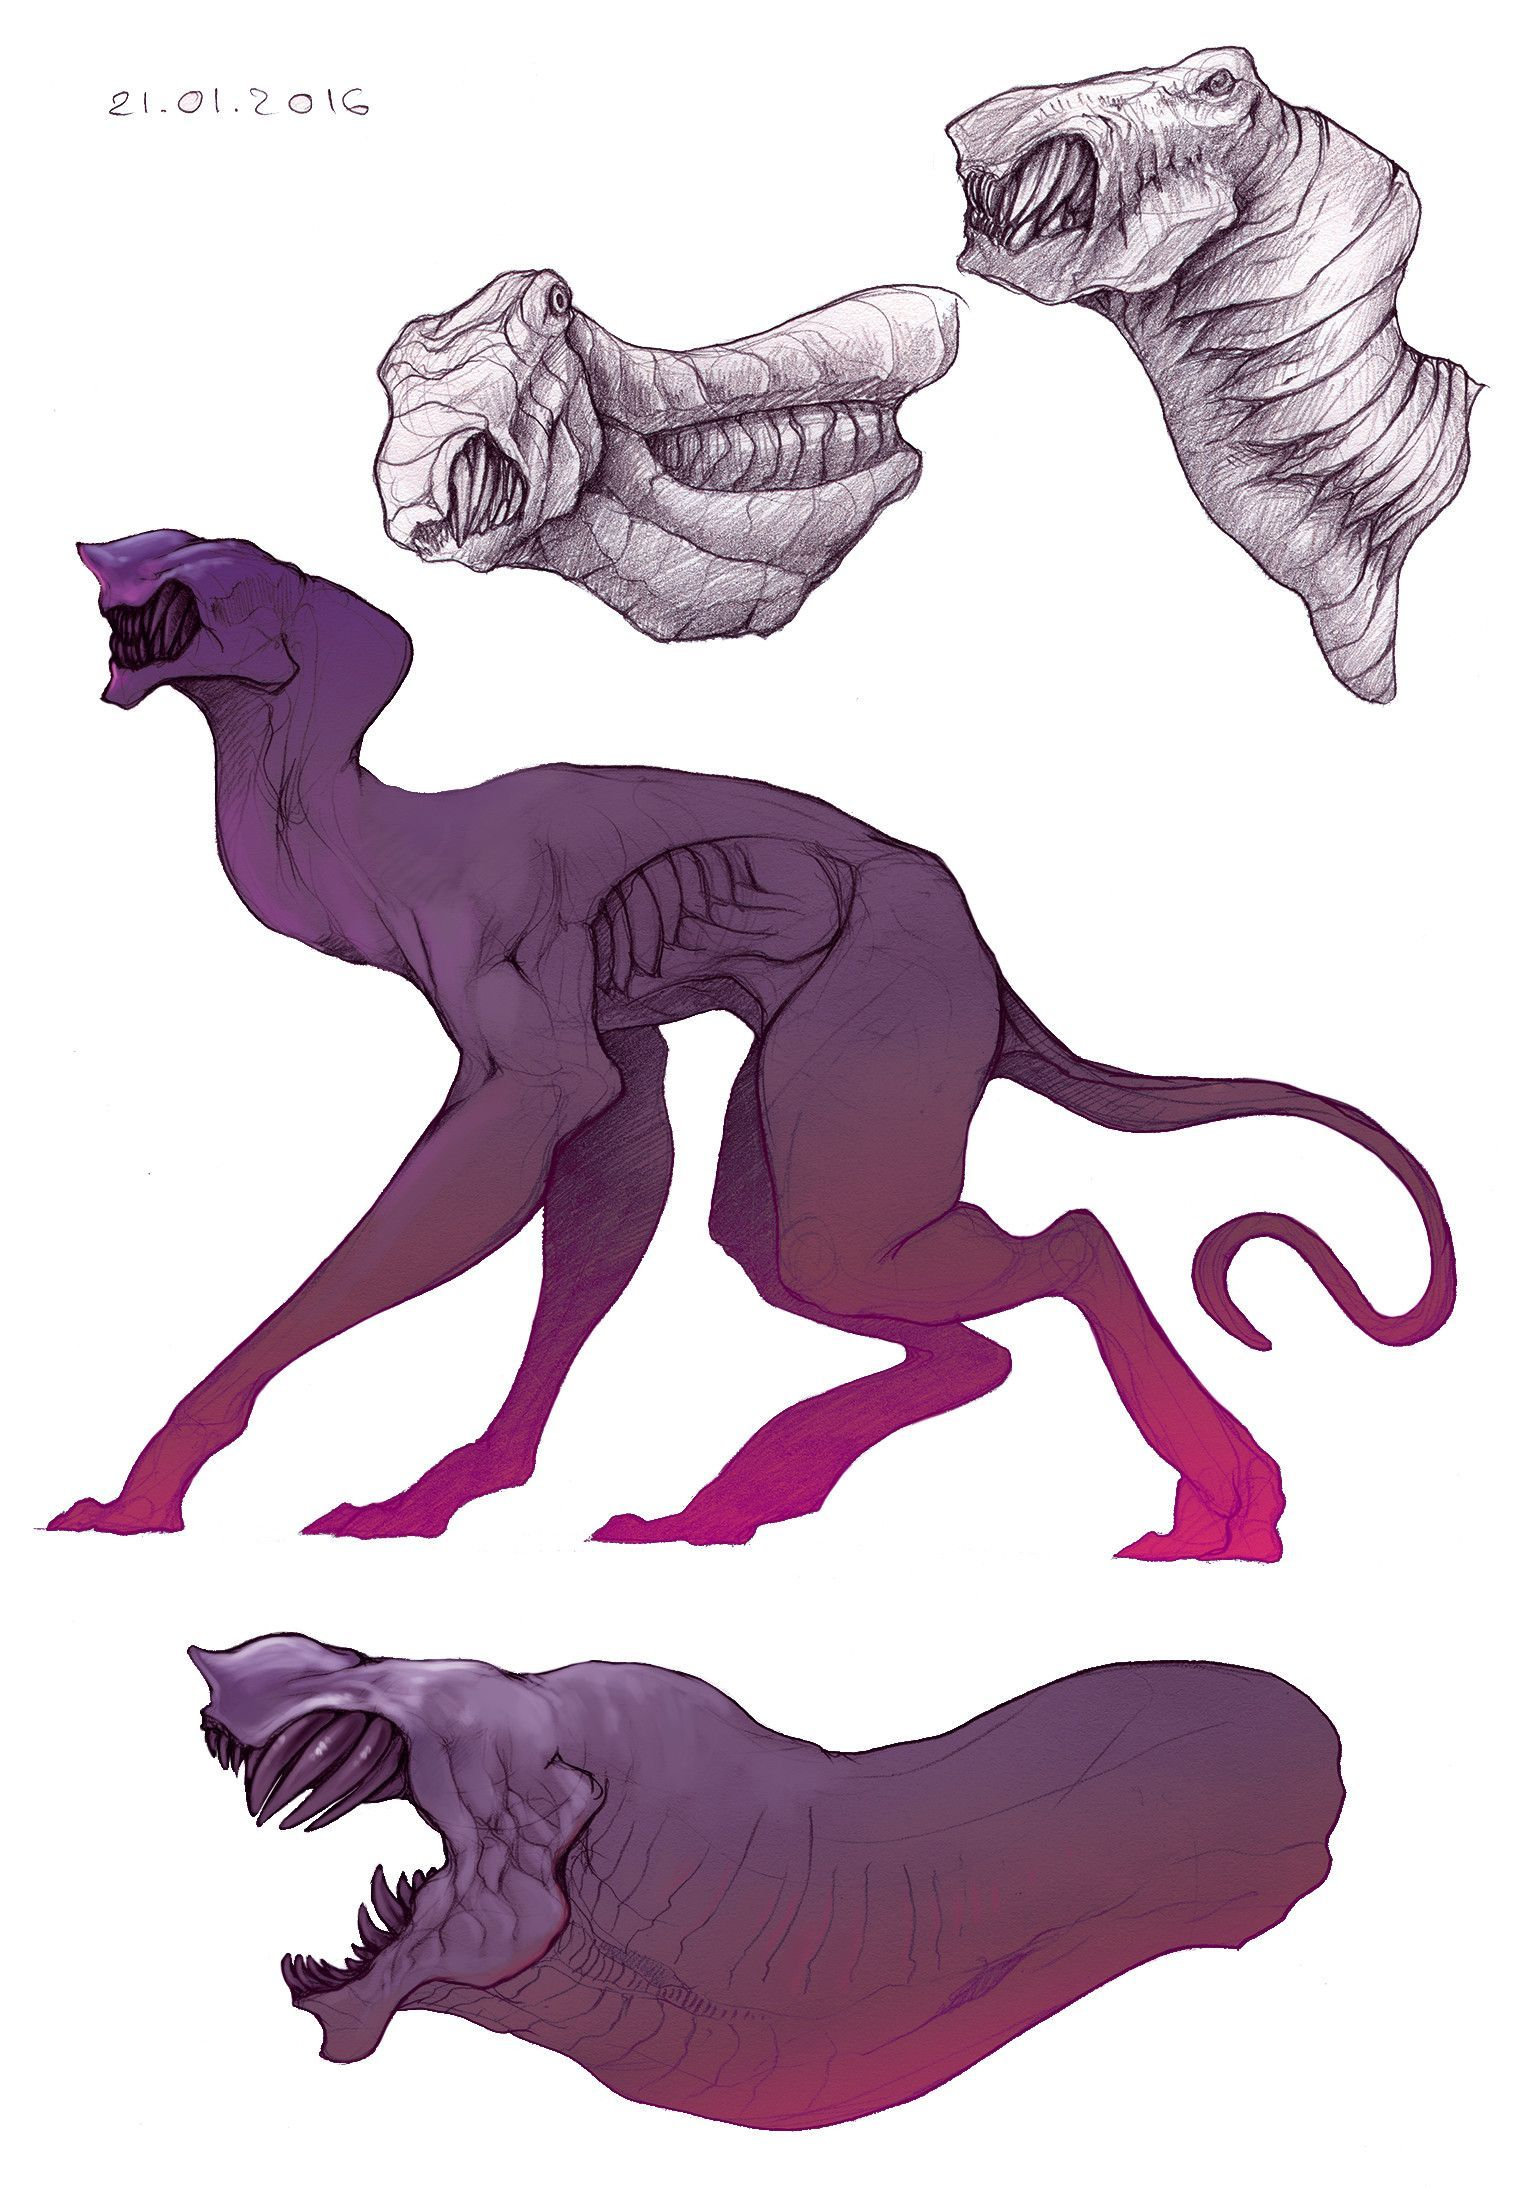 10 Exquisite Learn To Draw Animals Ideas In 2020 Creature Concept Art Monster Concept Art Creature Drawings